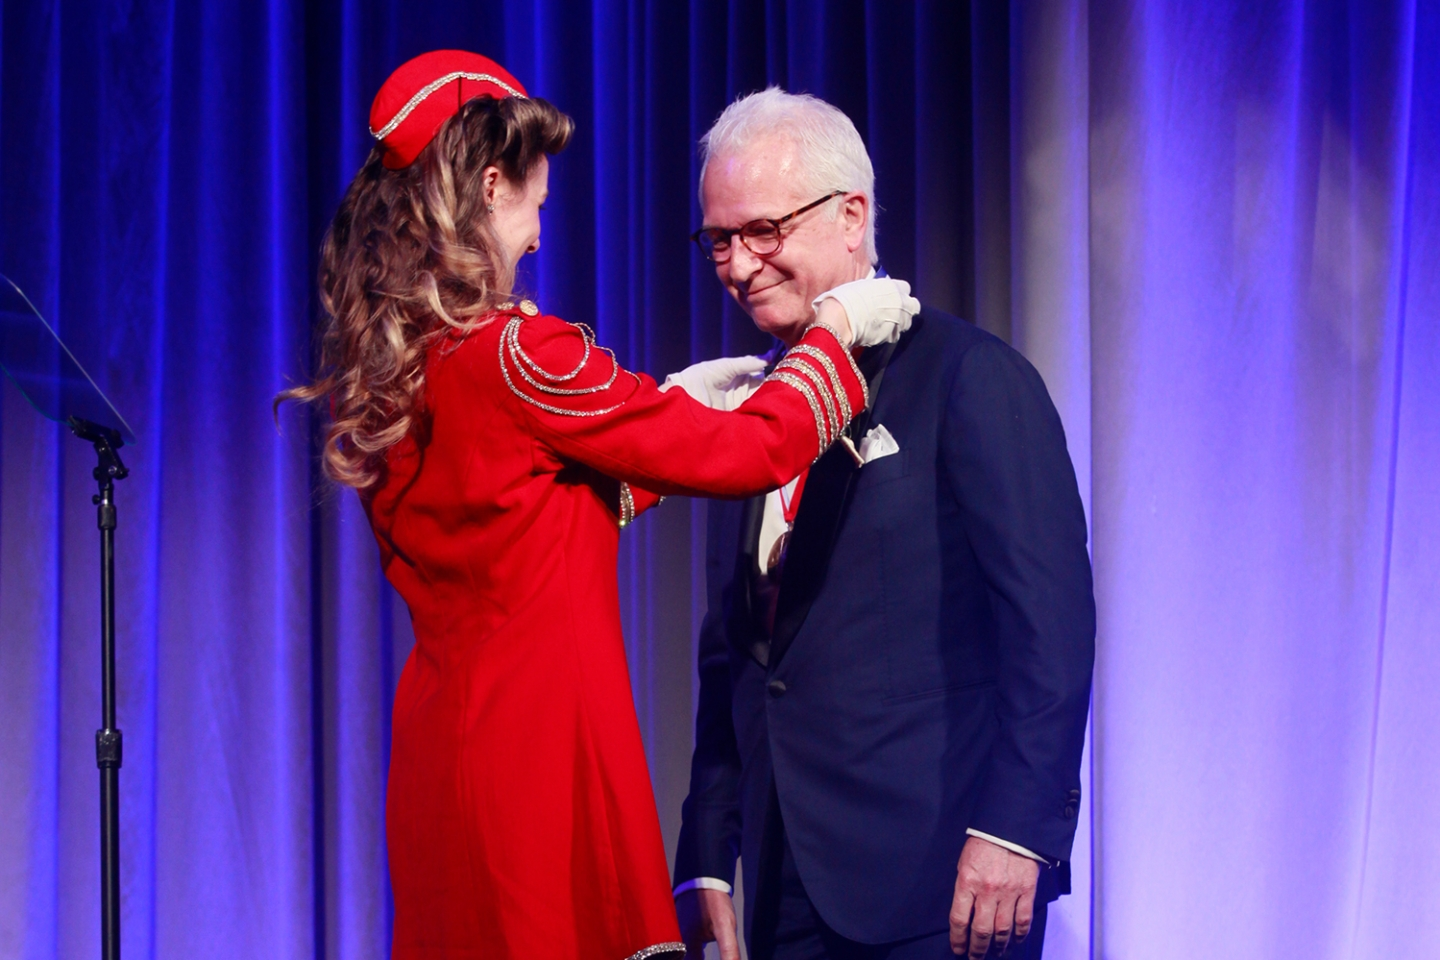 Dr. Philip Stieg accepts the prestigious Ellis Island Medal of Honor in a ceremony held in the Great Hall at Ellis Island.